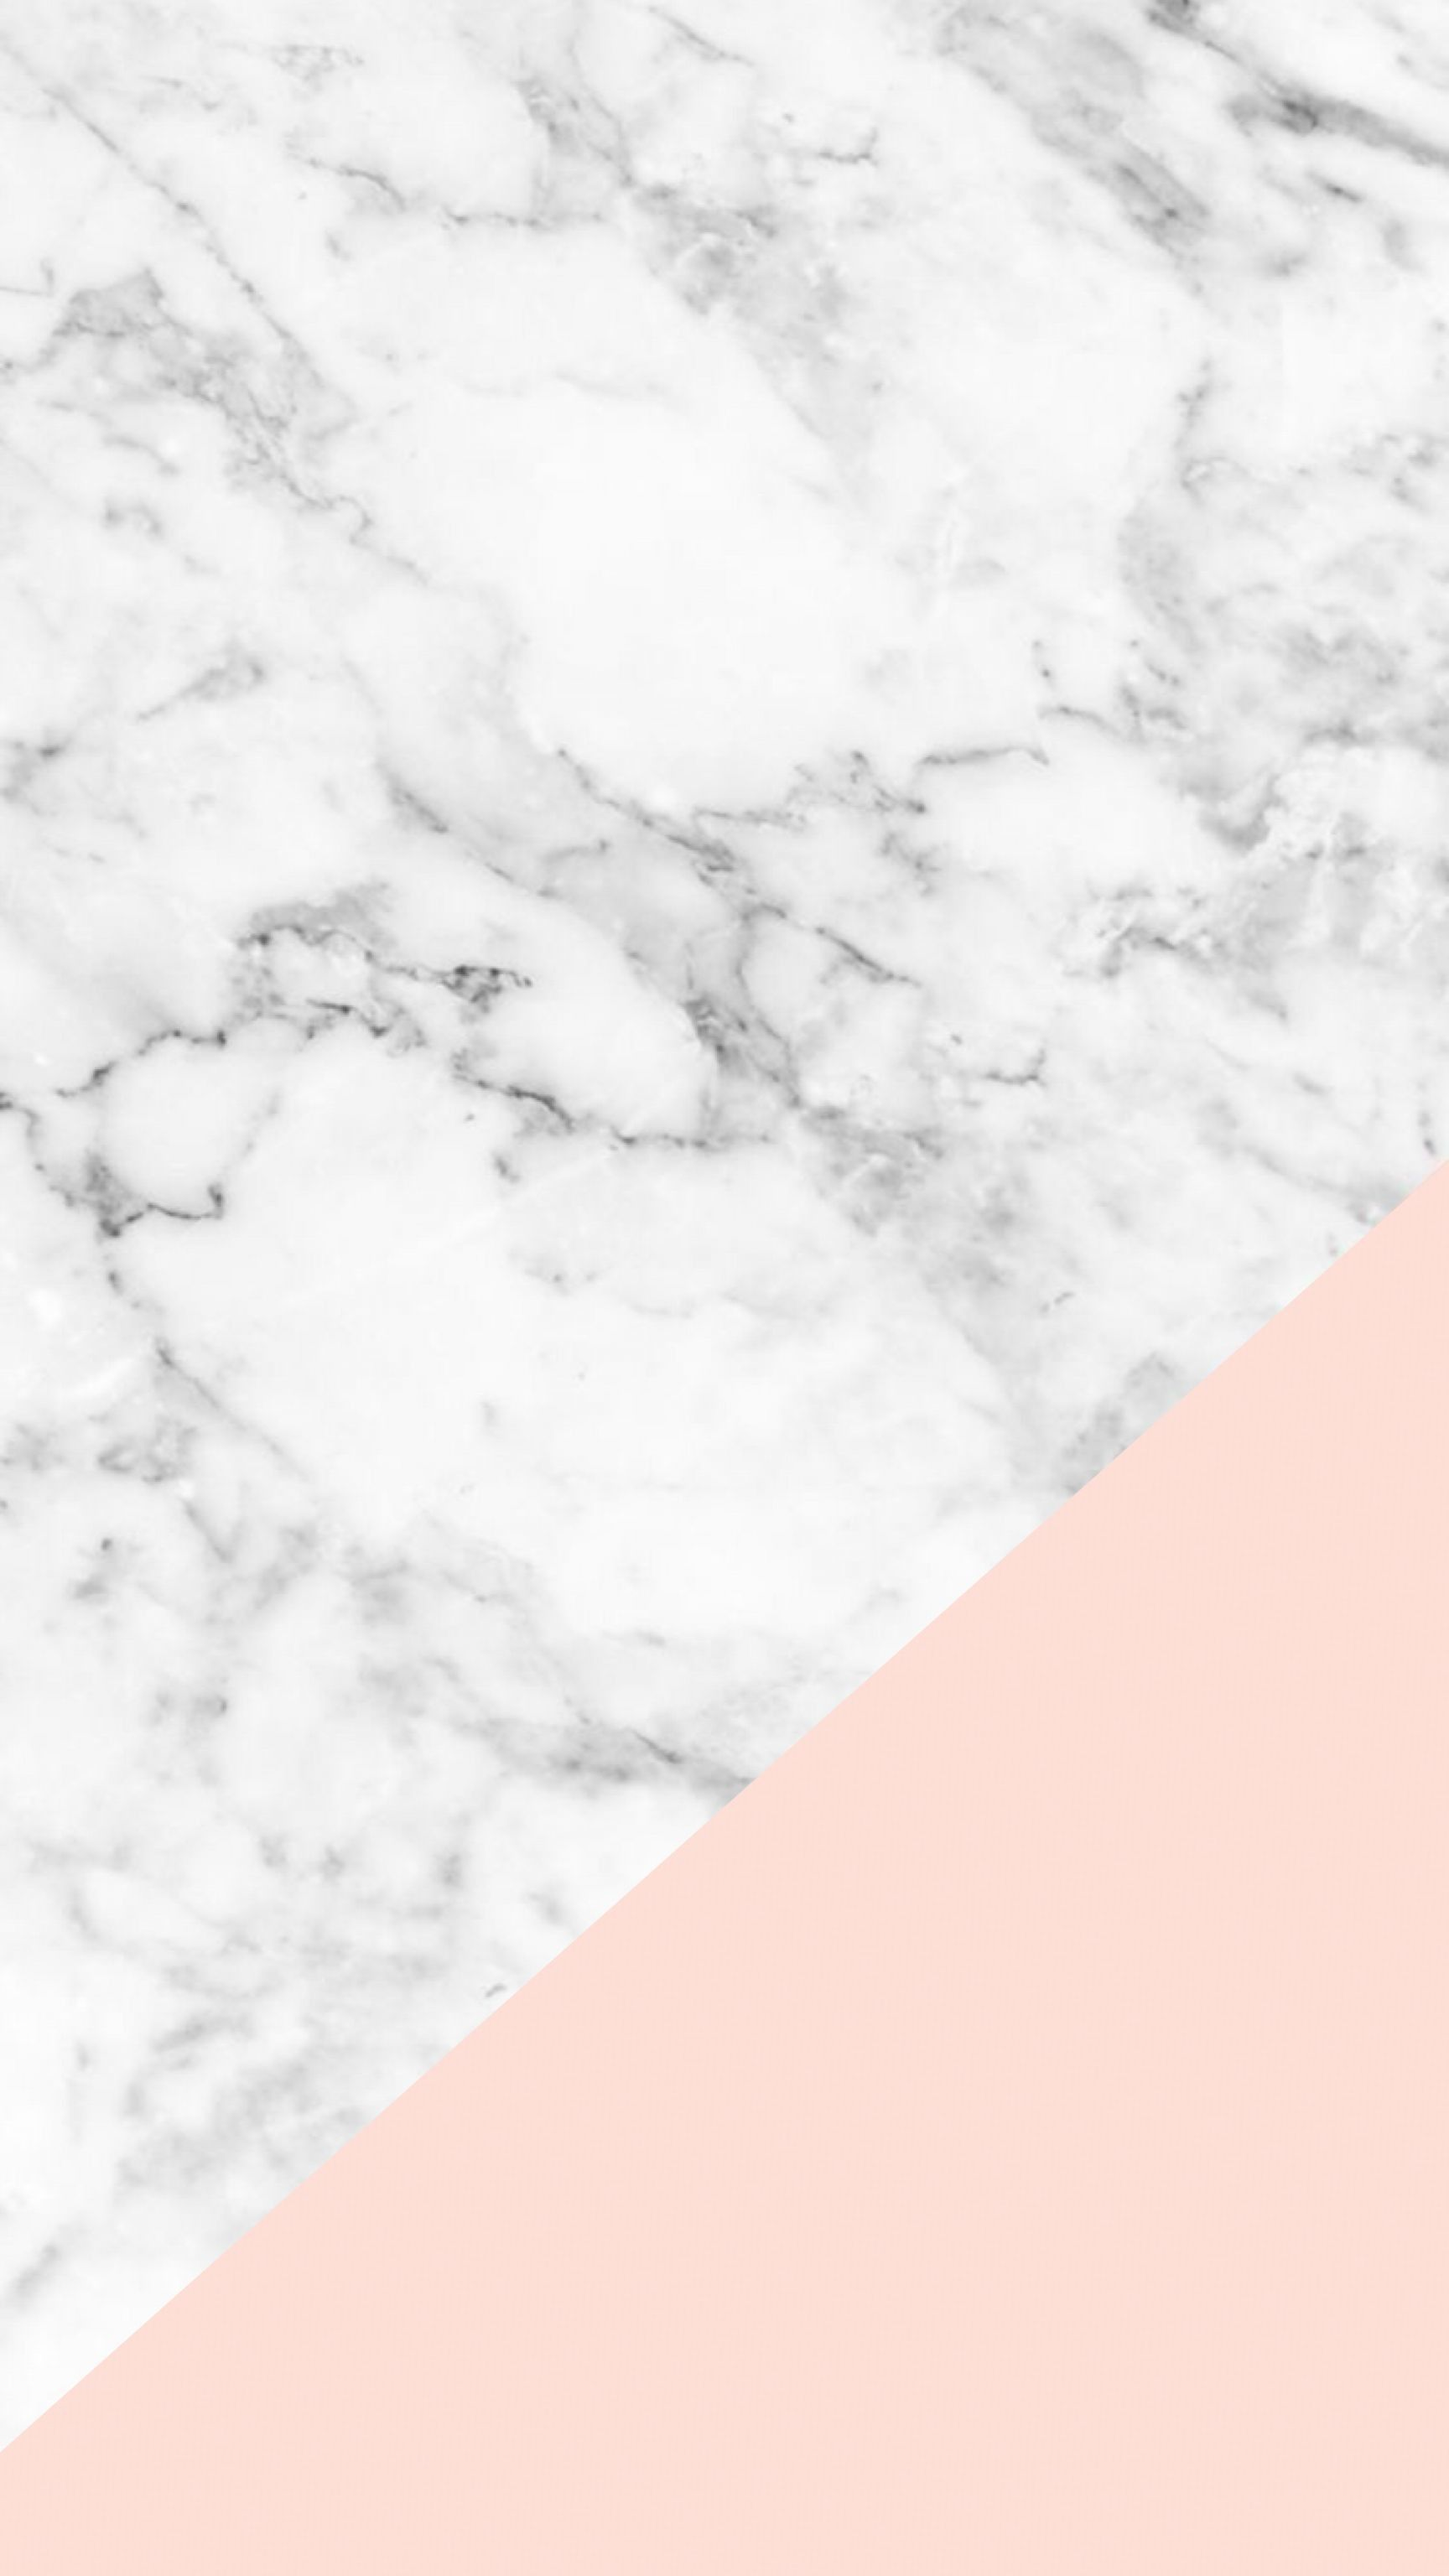 Marble Wallpaper For Phone 340147 Marble Wallpaper Phone